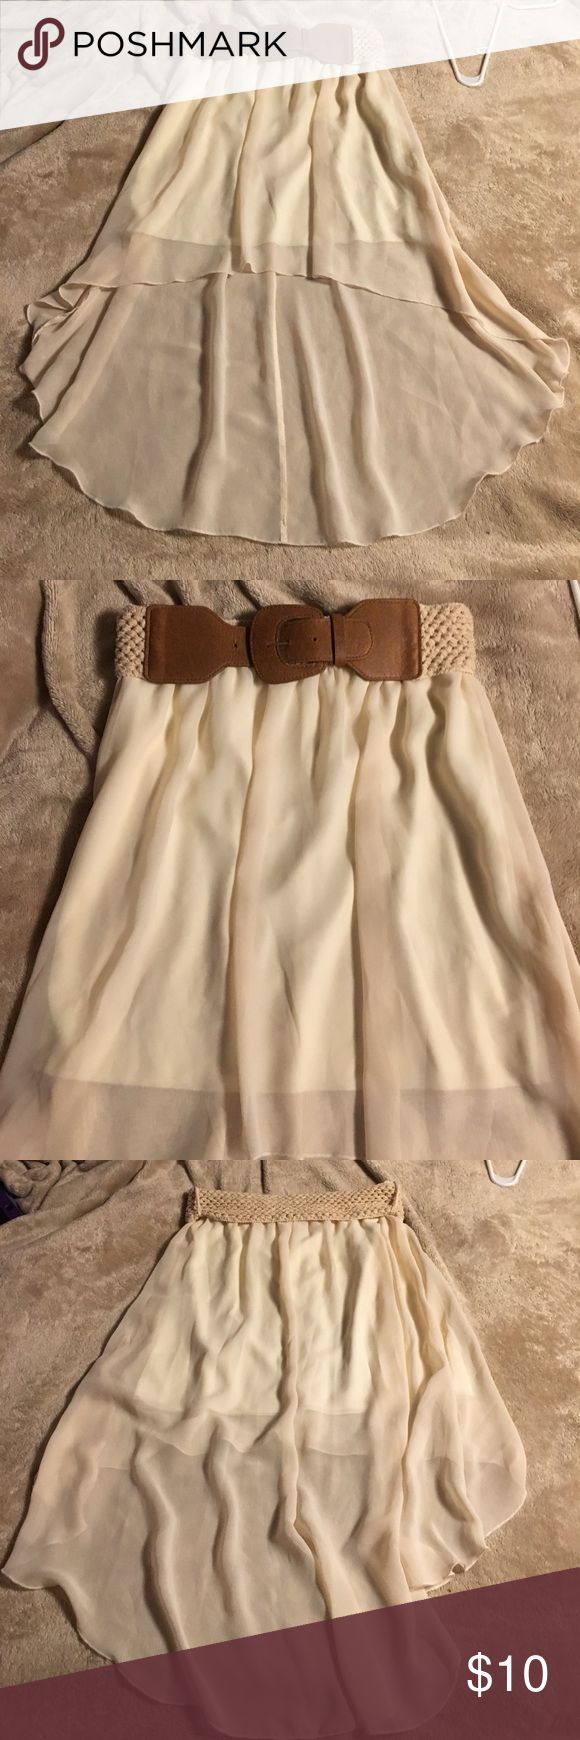 Cream skirt Good quality skirt, comfortable. Belt comes with it but can be taken off. Rue 21 Skirts High Low